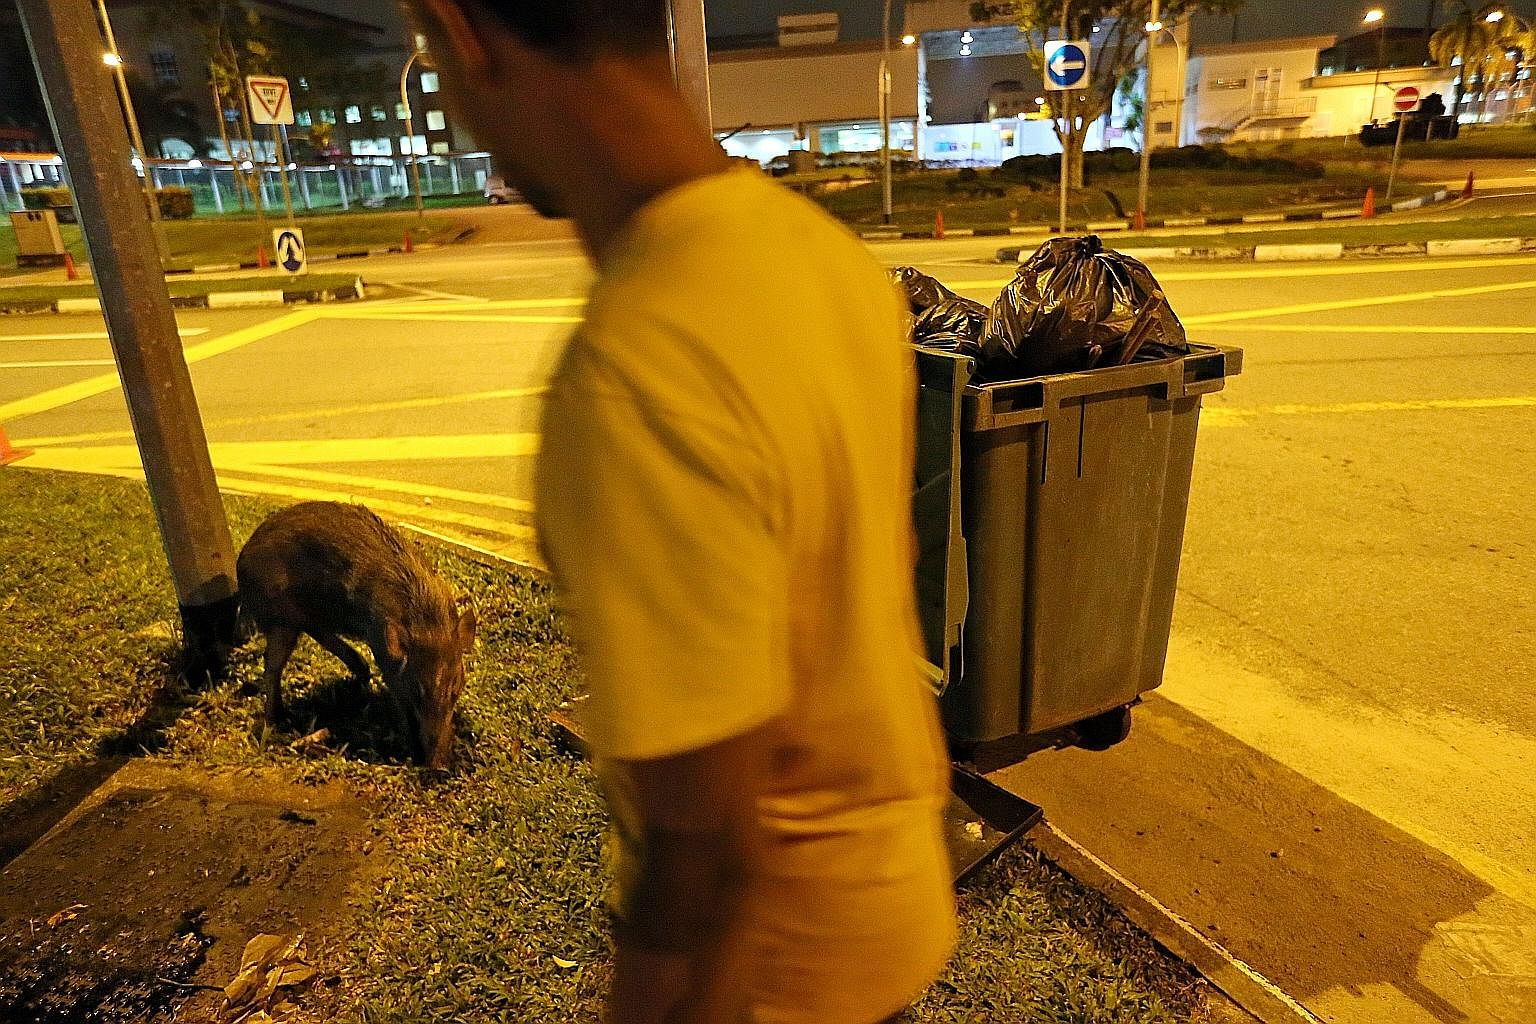 A boar foraging for food off Choa Chu Kang Road last year. The study that NParks may conduct would look at how far the pigs move in search o